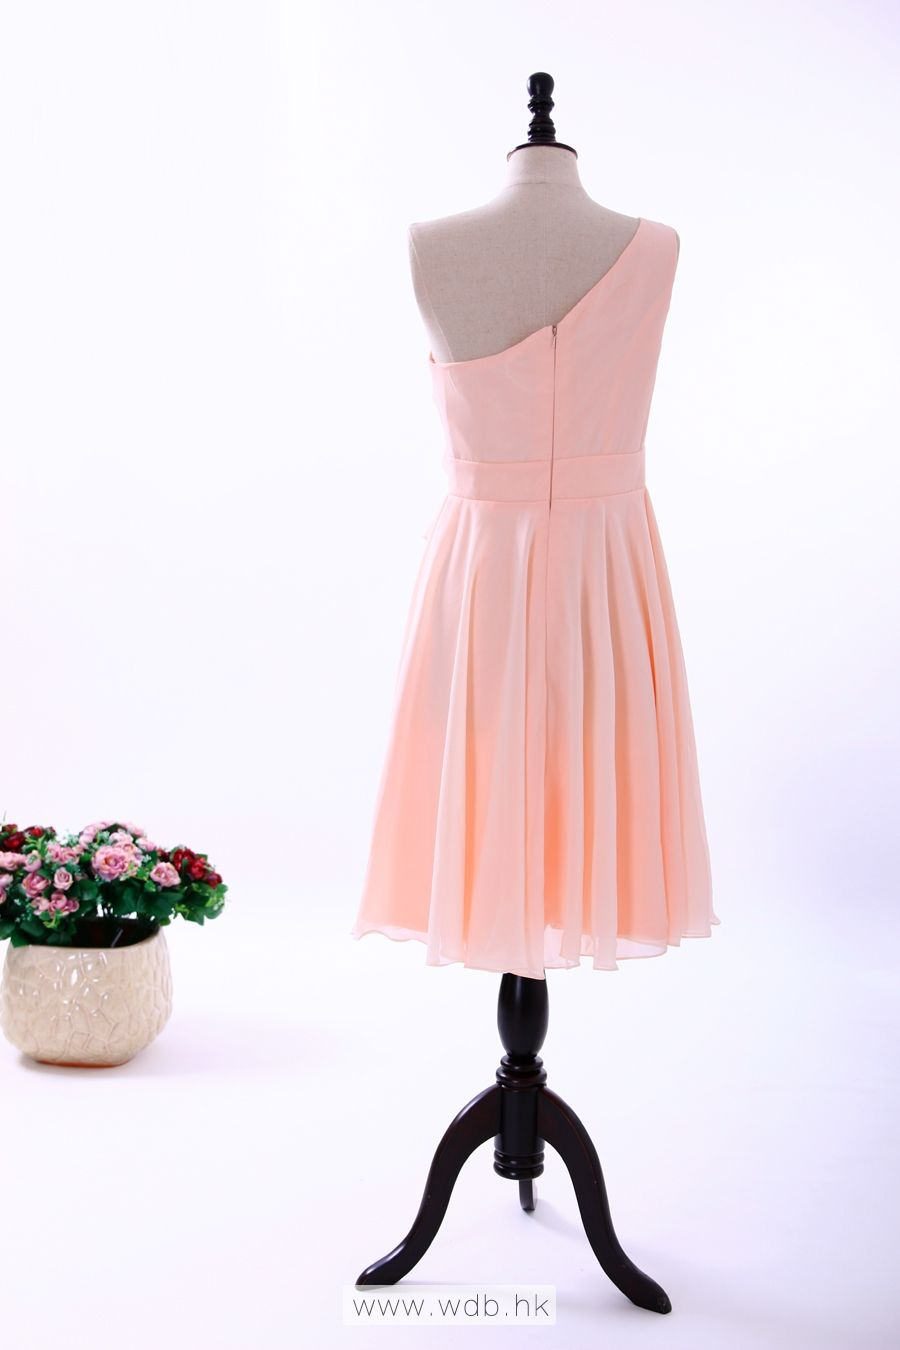 """""""One Shoulder Chiffon Dress with Flower and Flounce Detail $117.98"""""""